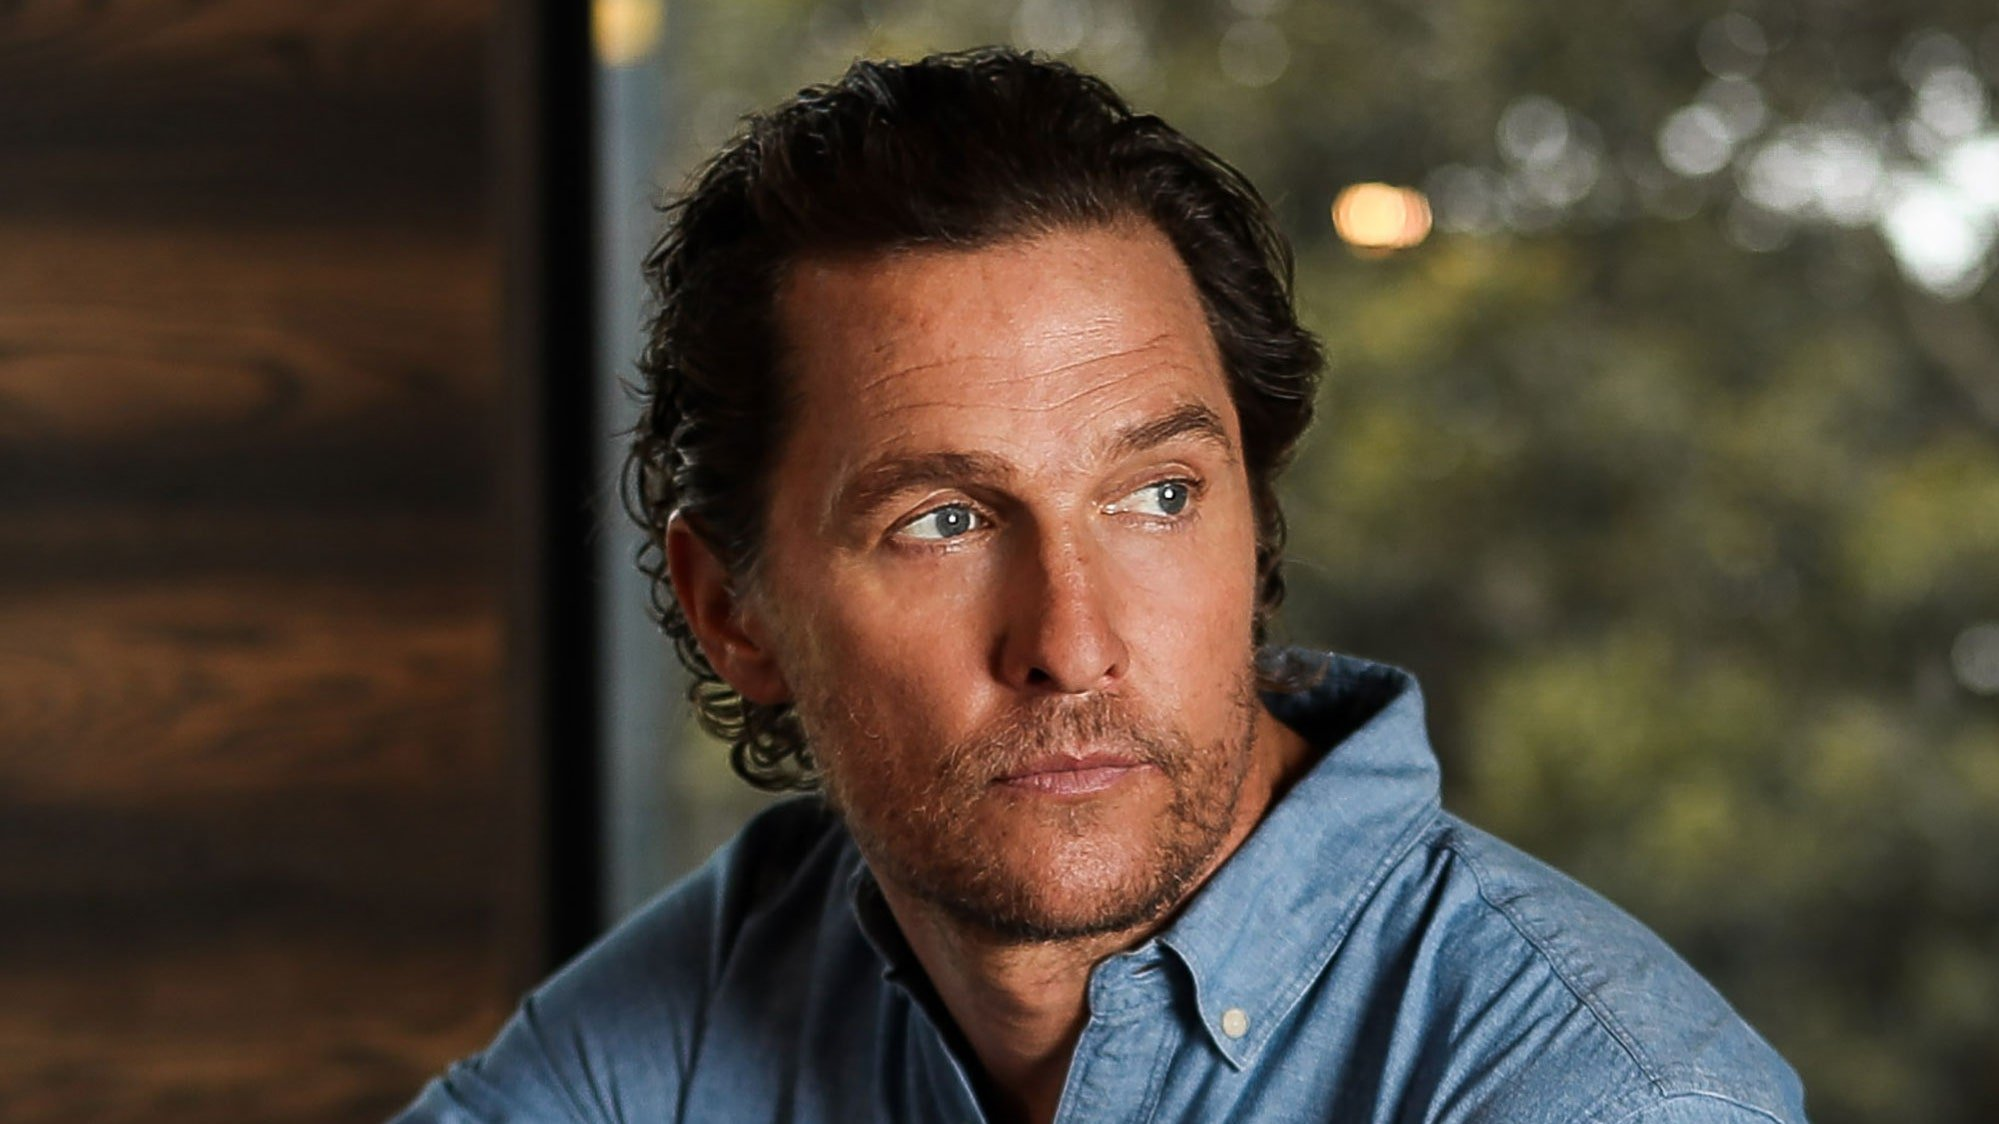 Matthew McConaughey Spent 52 Days Alone in the Desert with No Electricity to Write His Memoir | Vanity Fair